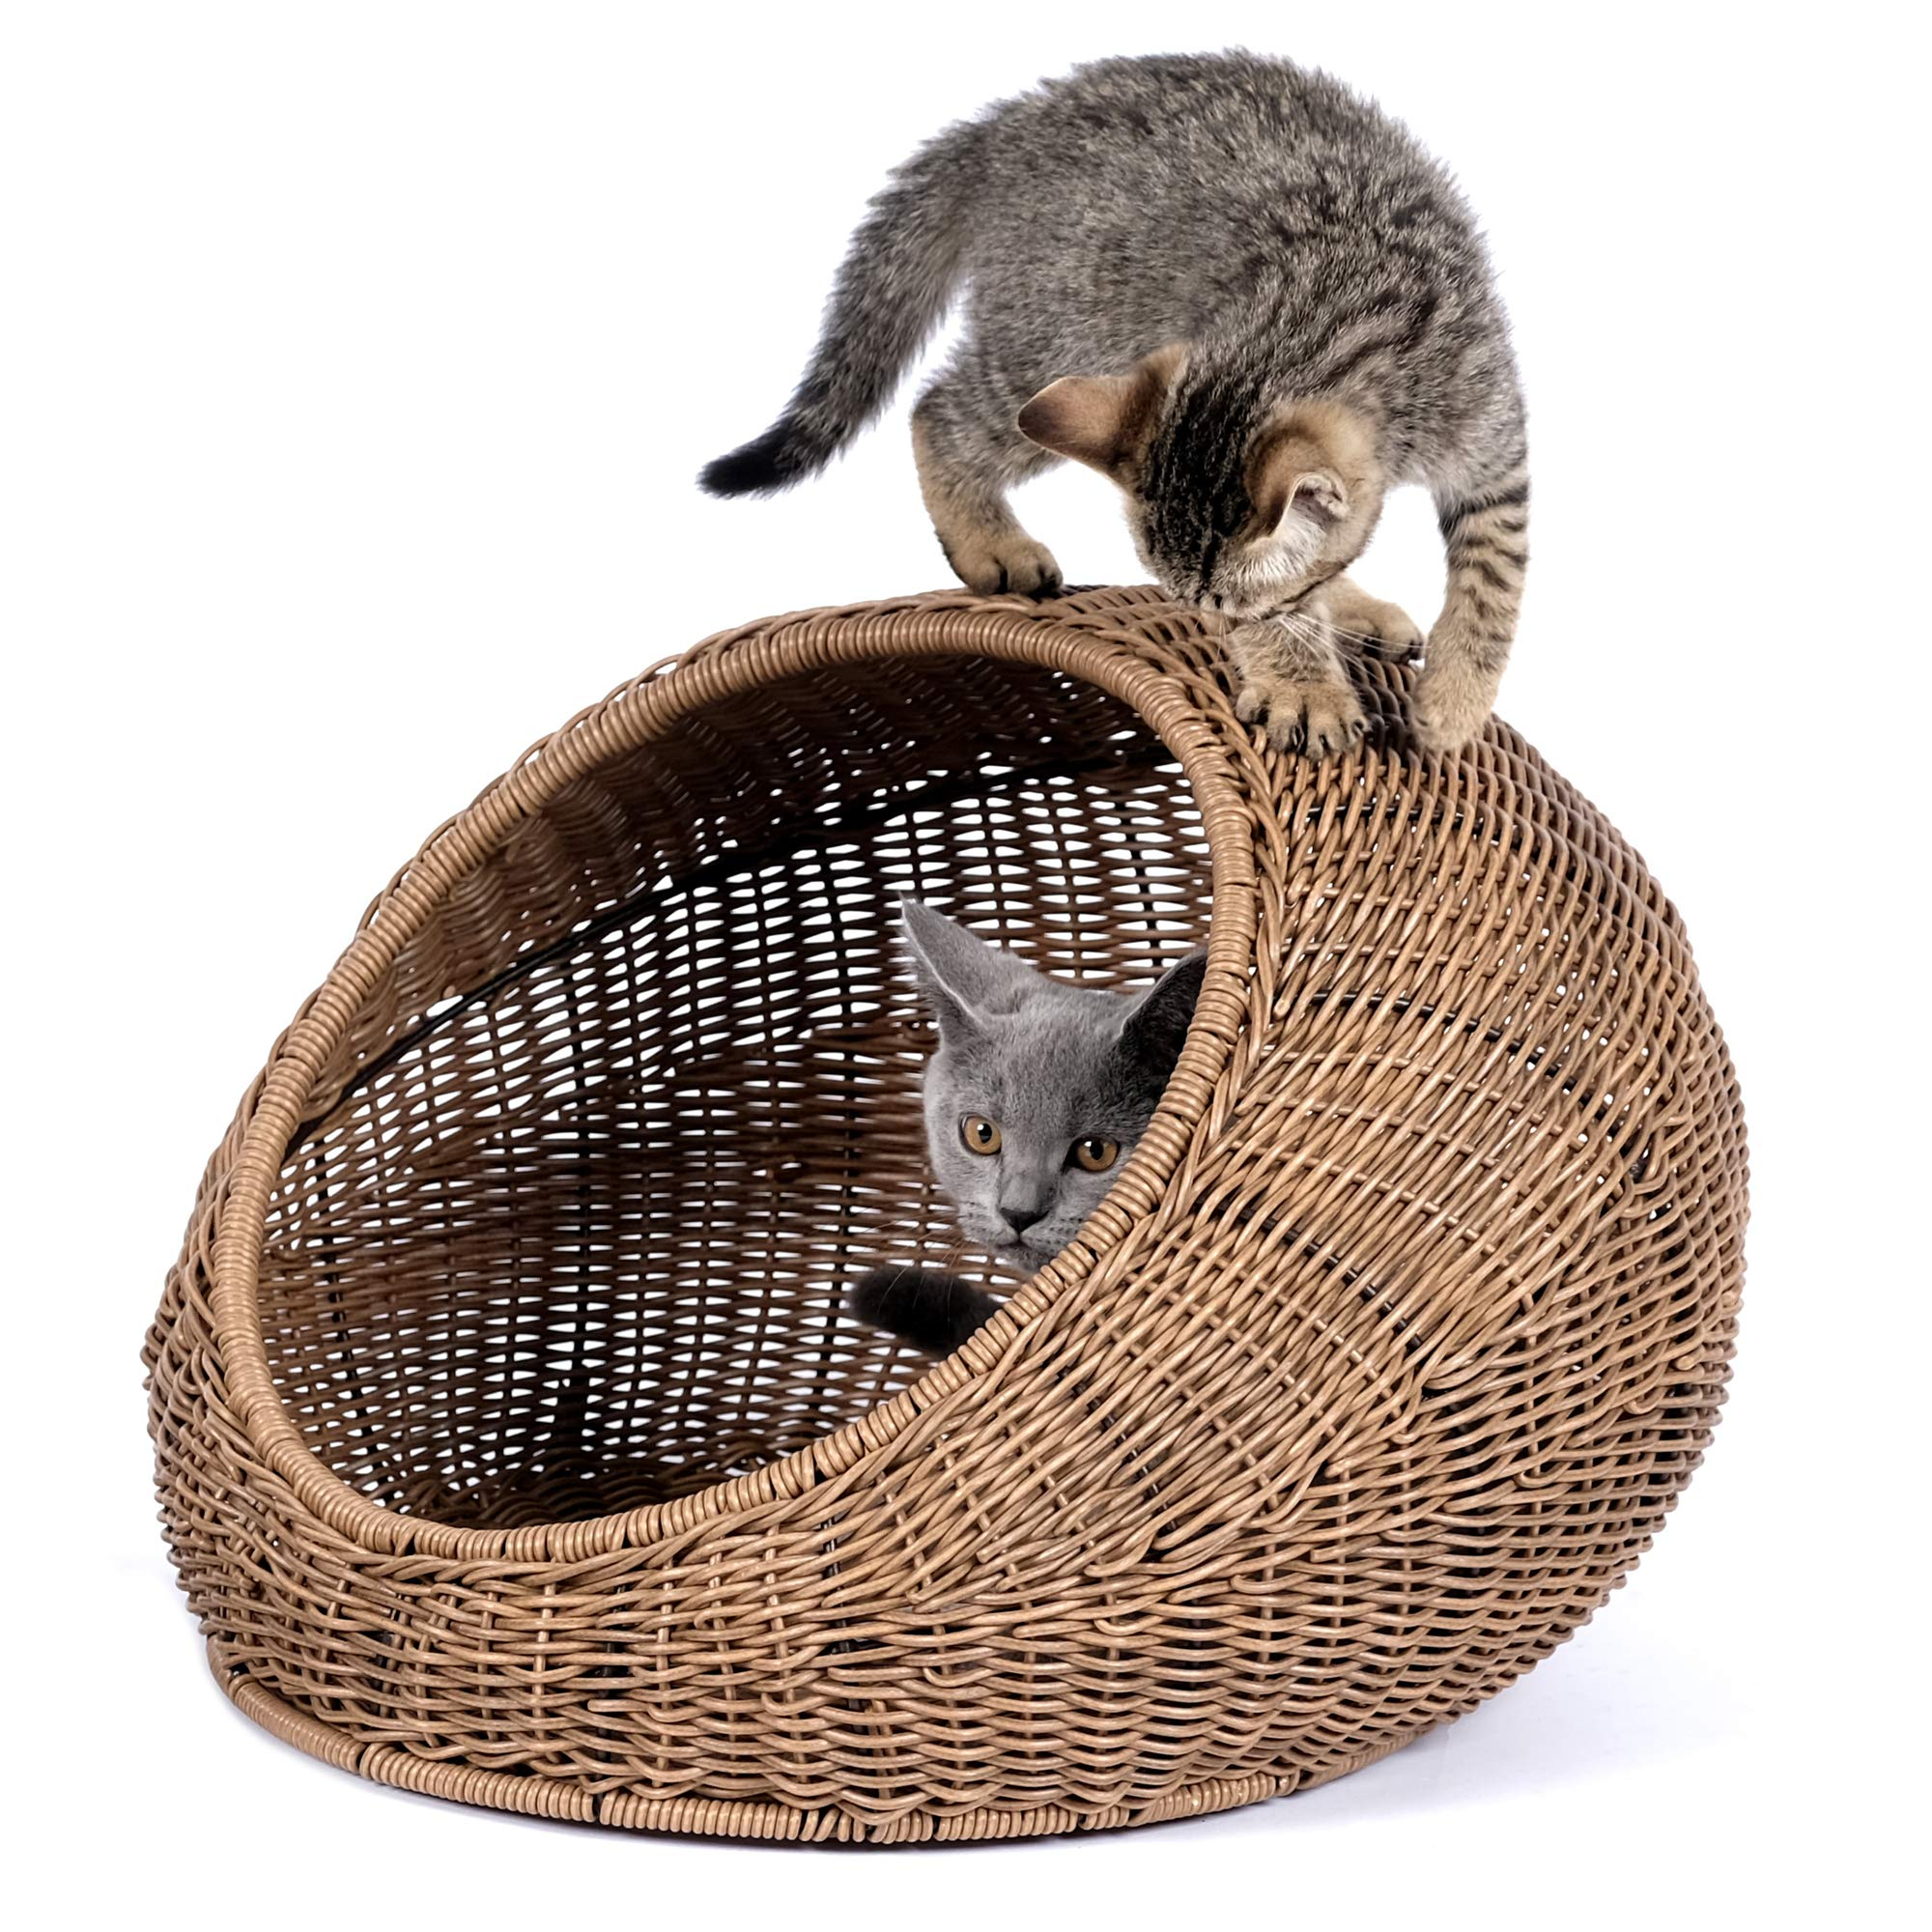 D+GARDEN Wicker Cat Bed Dome for Medium Indoor Cats - a Covered Cat Hideaway Hut of Rattan Houses Pets in Dome Basket, Washable by D+GARDEN